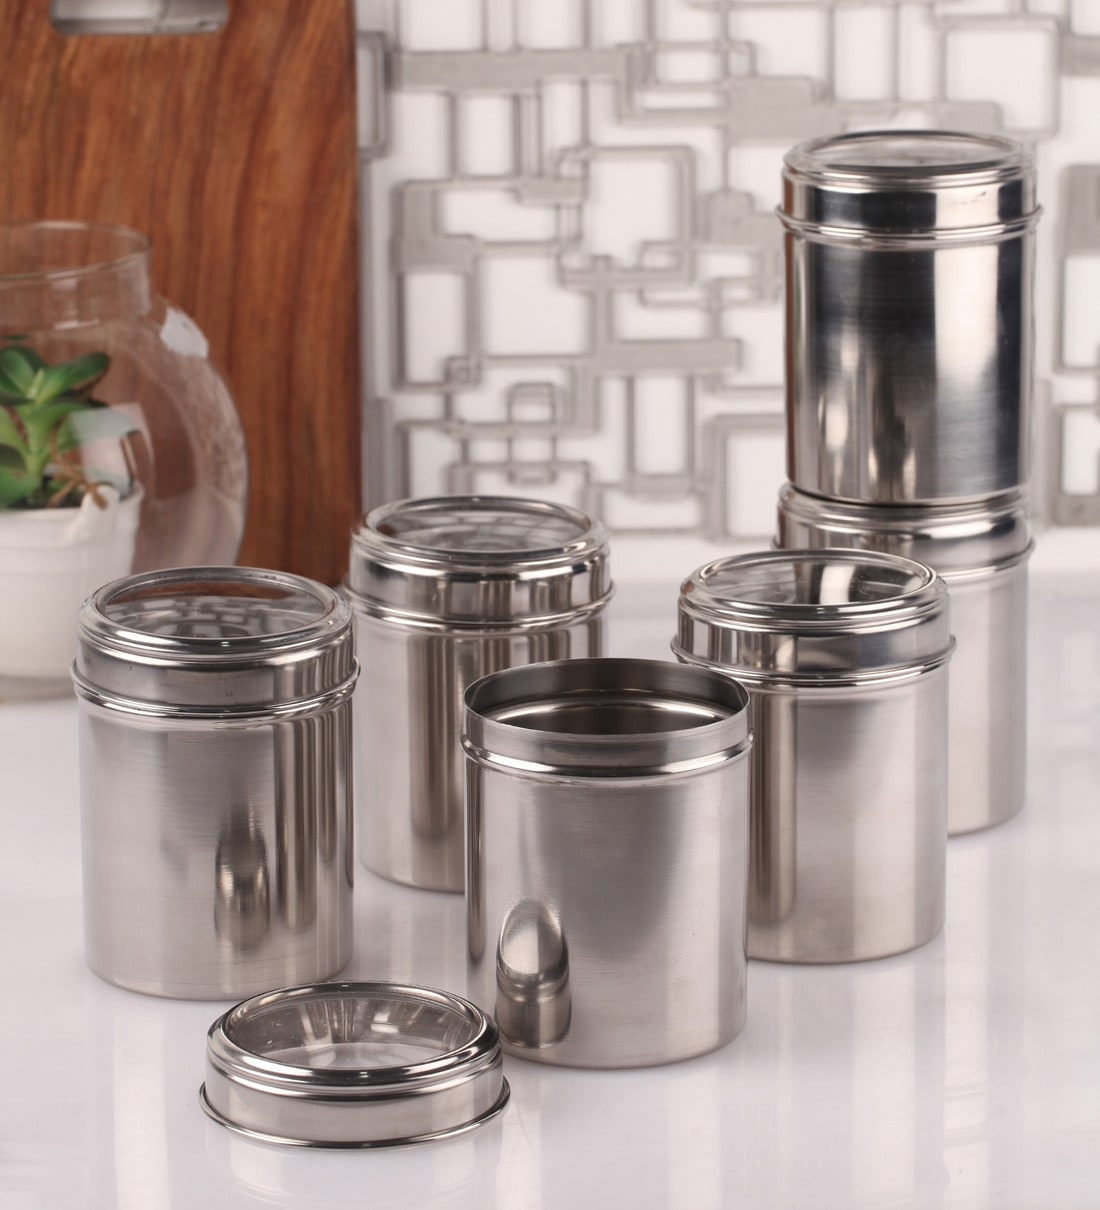 buy 750ml stainless steel round storage canister - set of